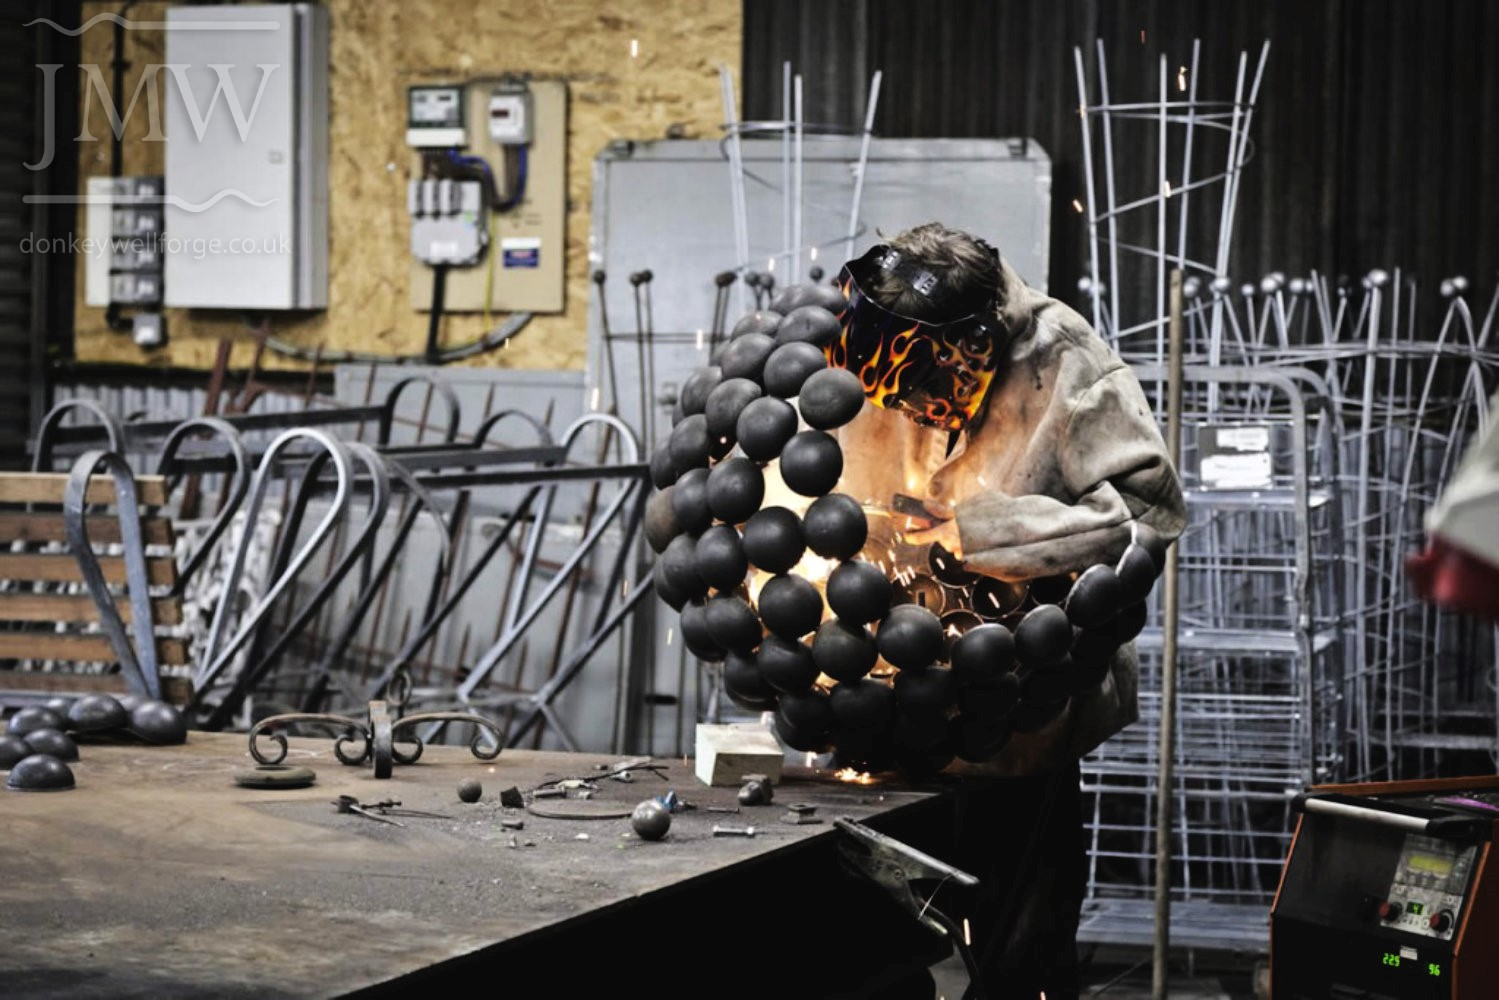 blacksmith-forge-welding-art-gloucestershire